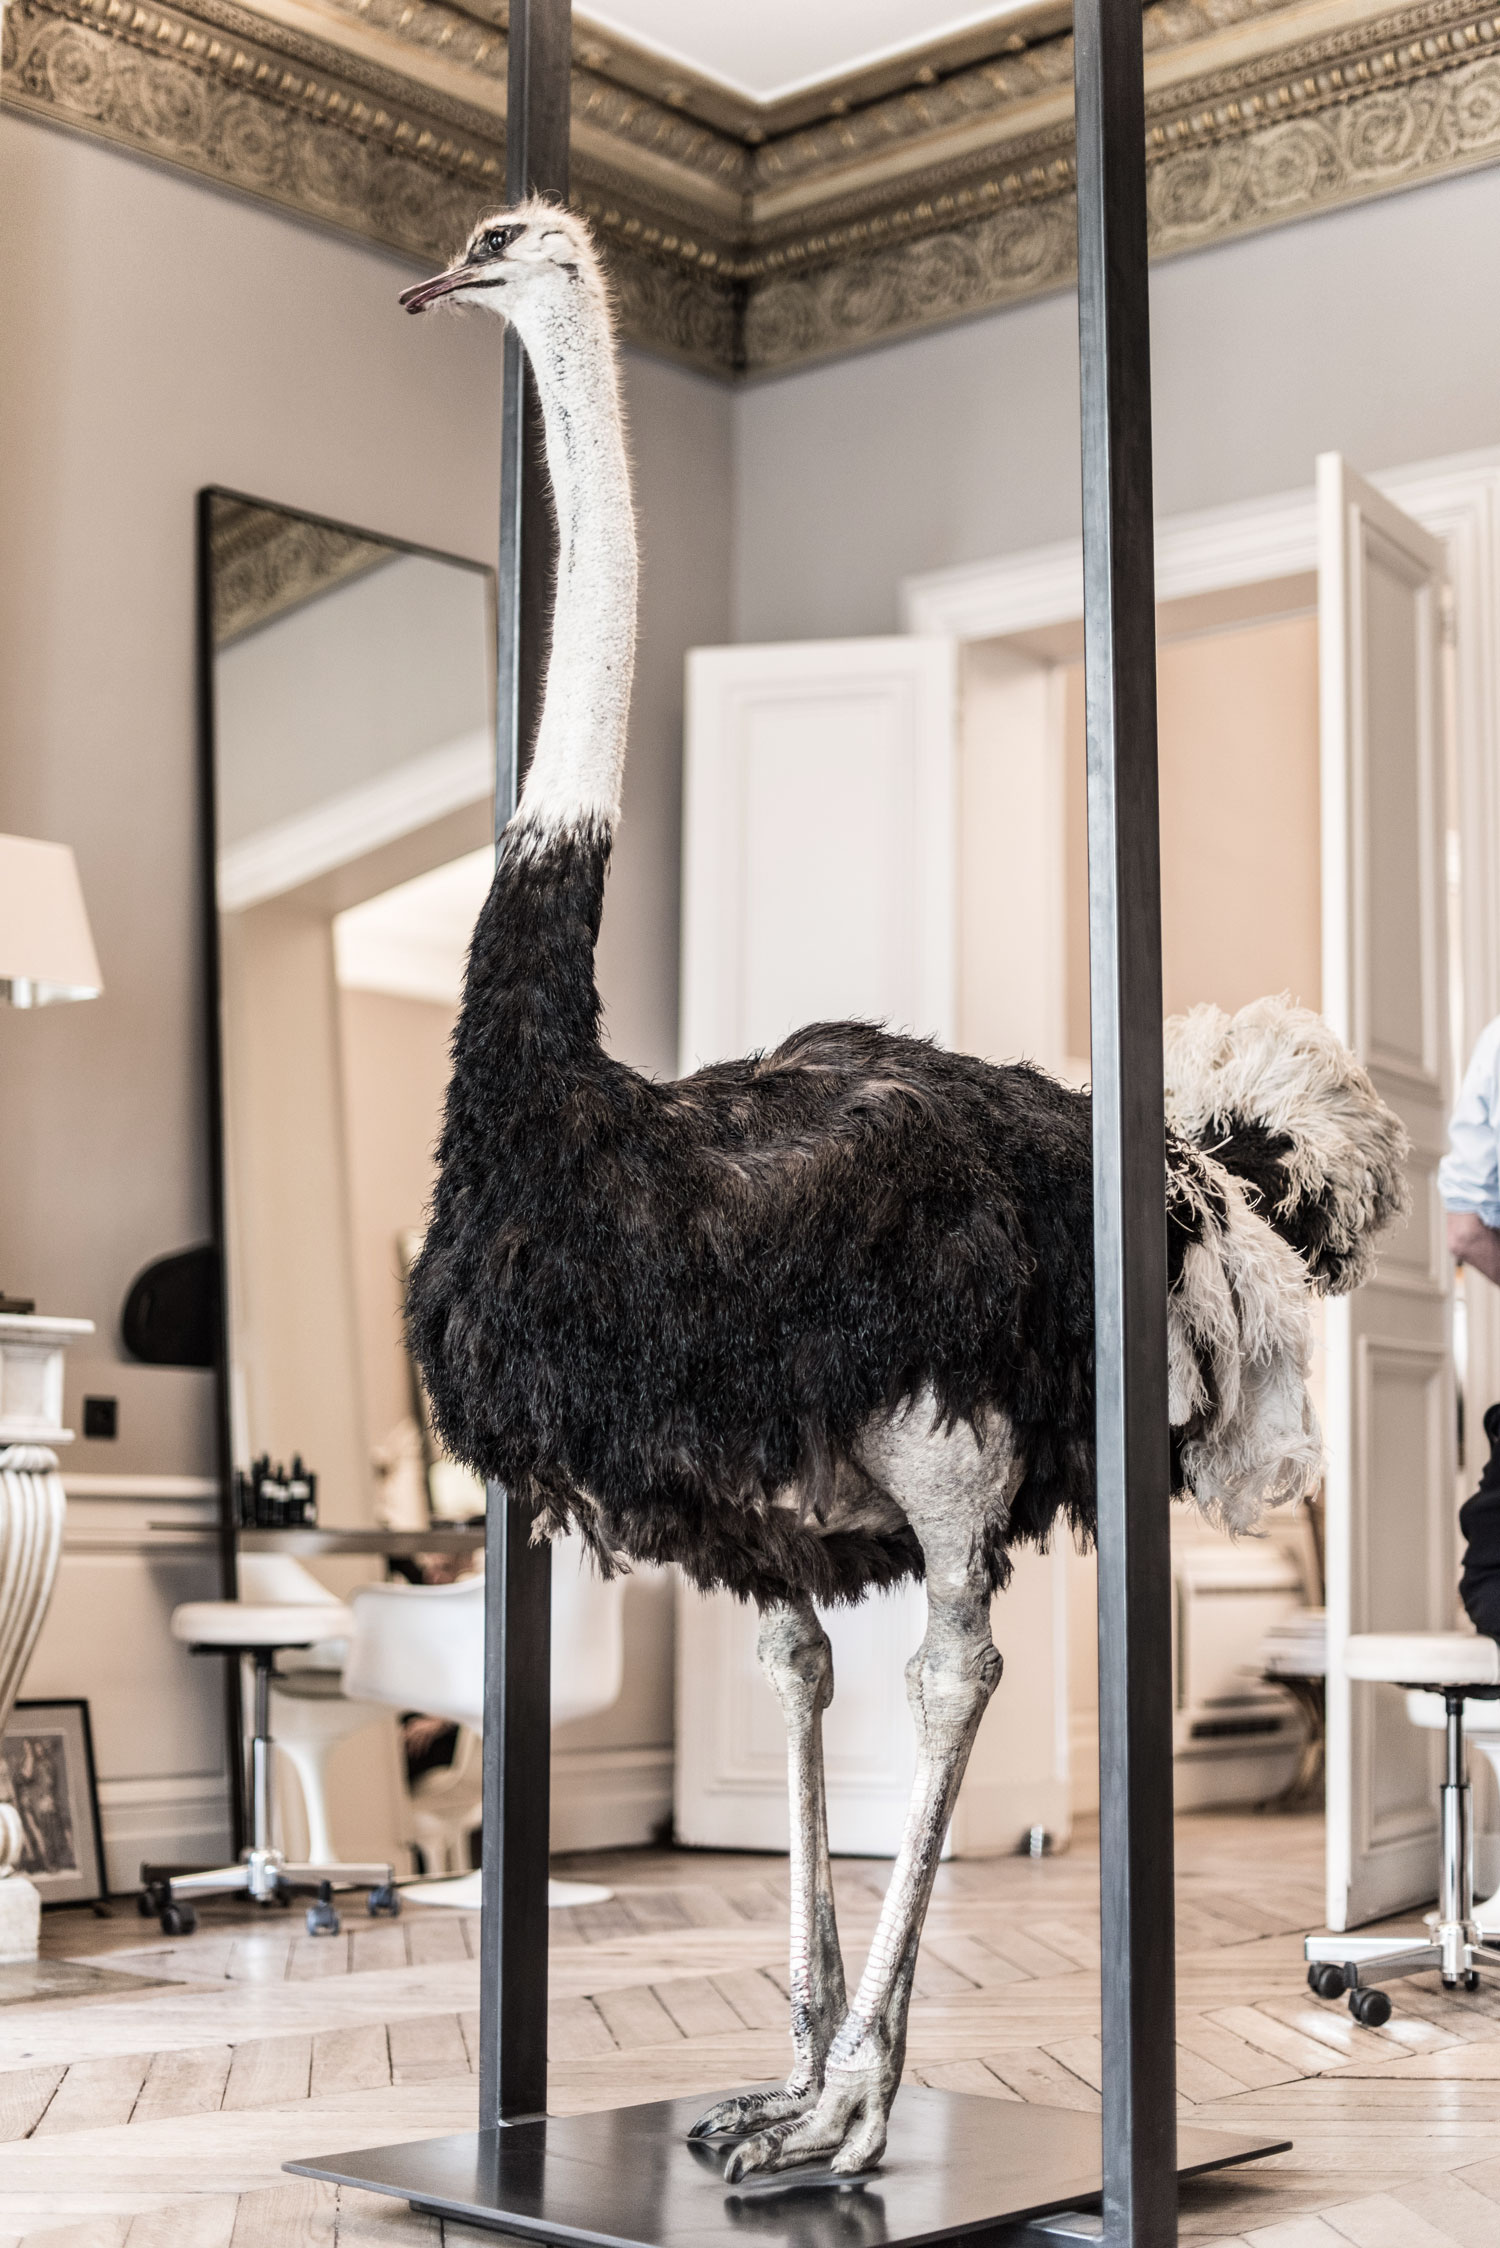 Ostrich at David Mallett salon